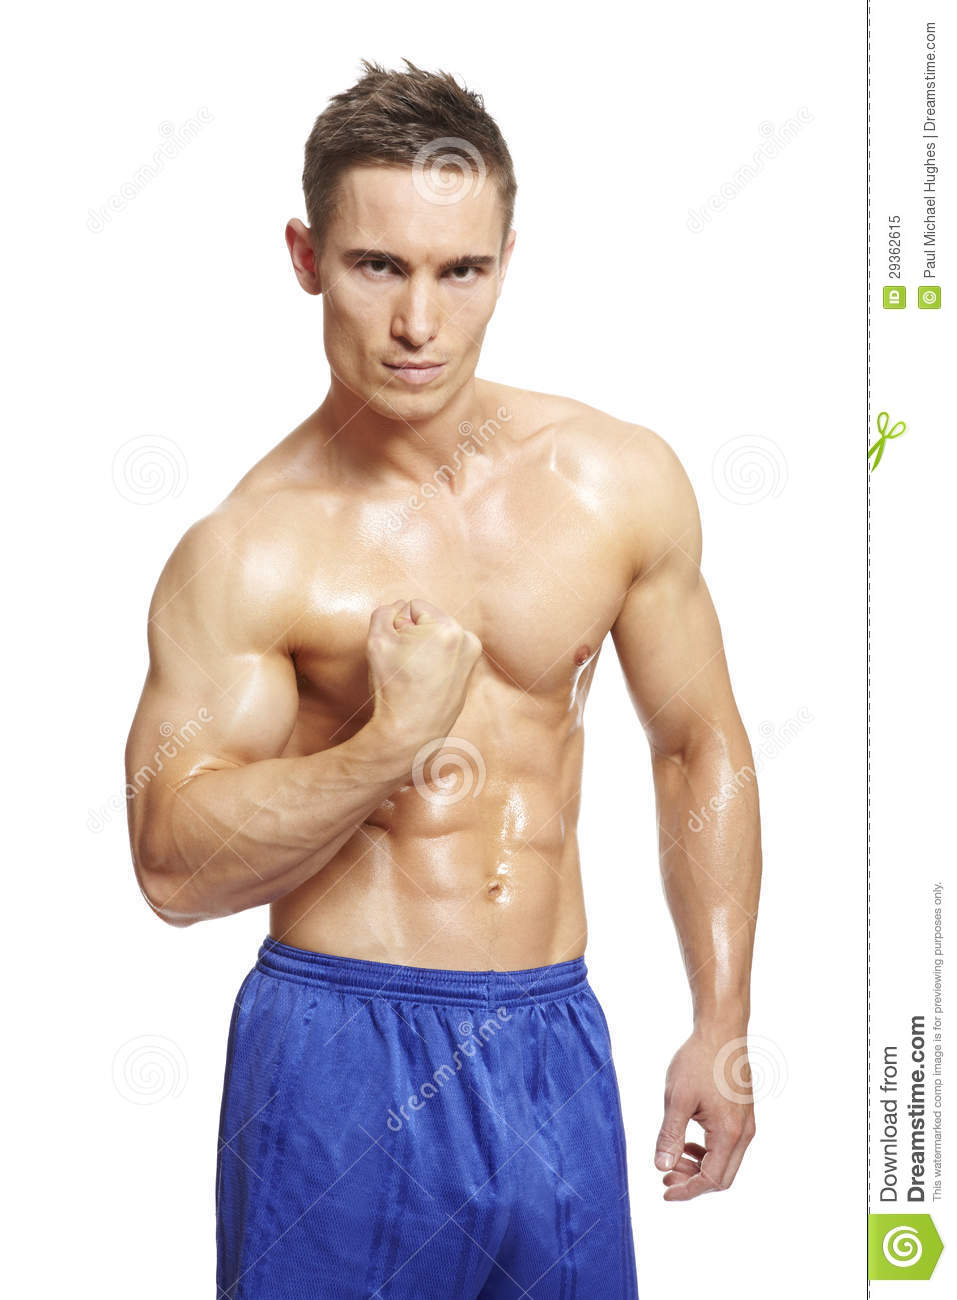 Muscular Young Man Flexing Arm Muscles In Sports Outfit Royalty Free ...